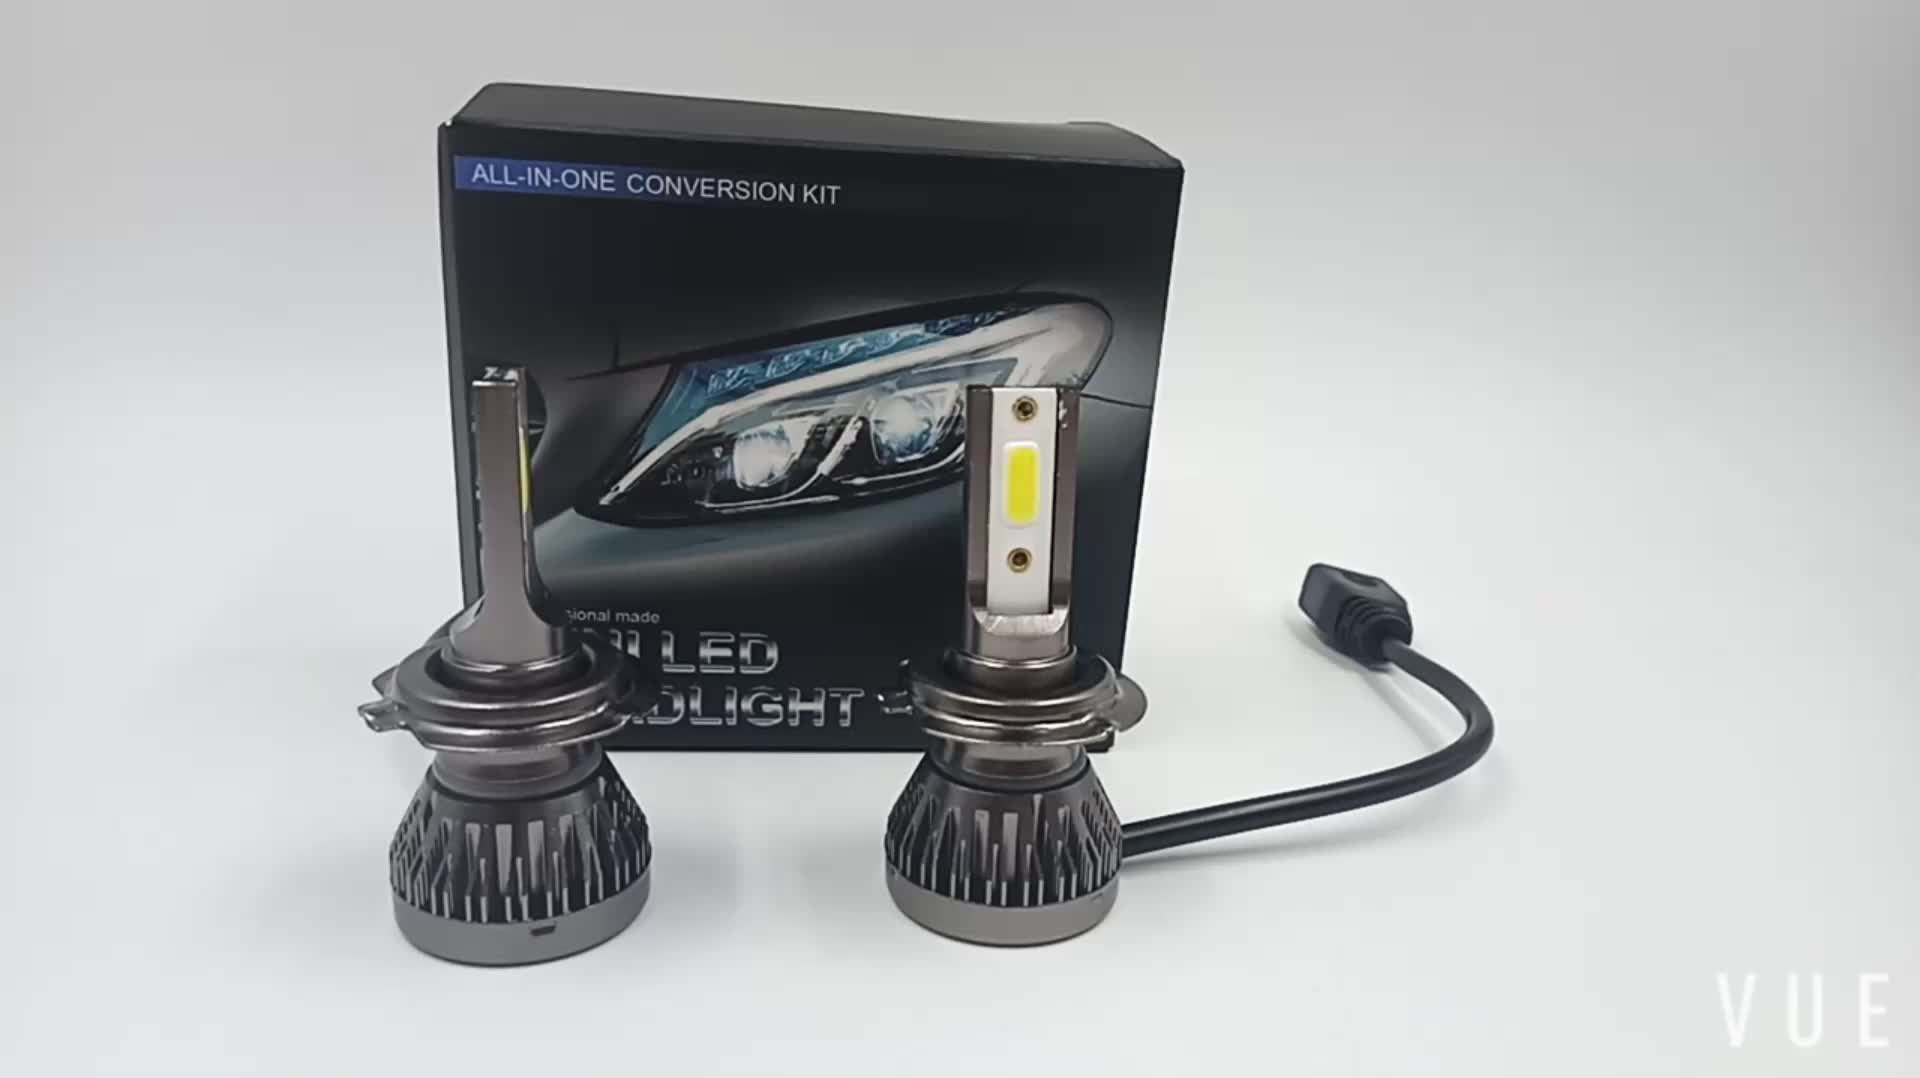 M1 40W 8000LM COB LED headlight bulb Car Auto DRL fog lights lamps H1 H3 H7 H8 H9 H10 H11 9005 9006 LED headlight